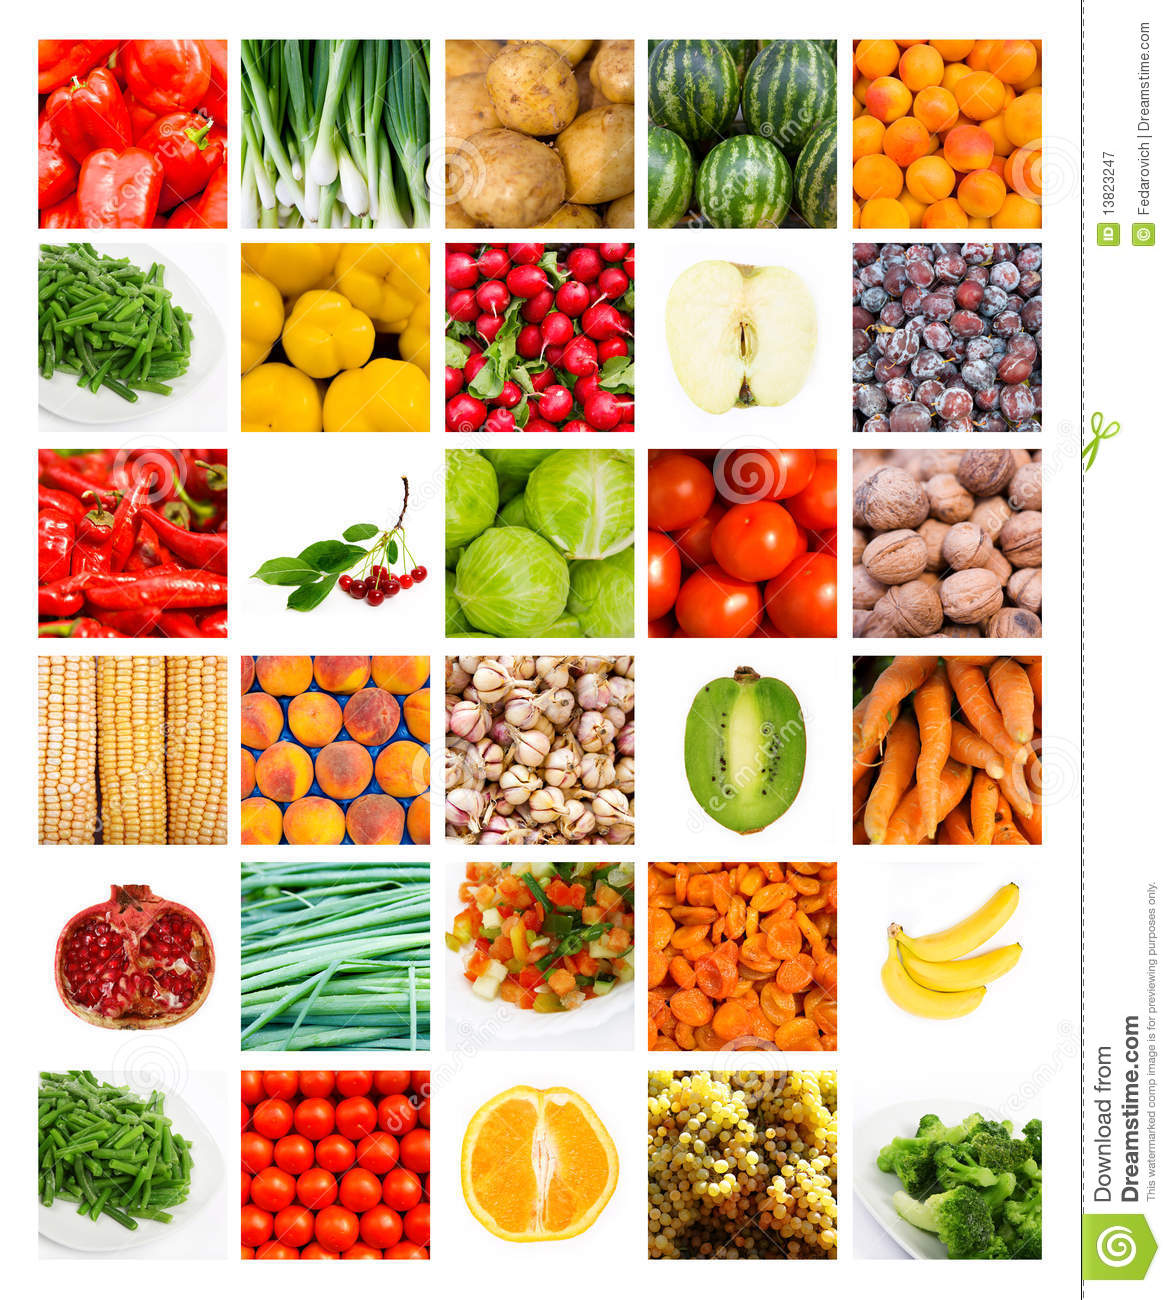 Bon Collage Of The Many Summer Vegetables And Fruits.